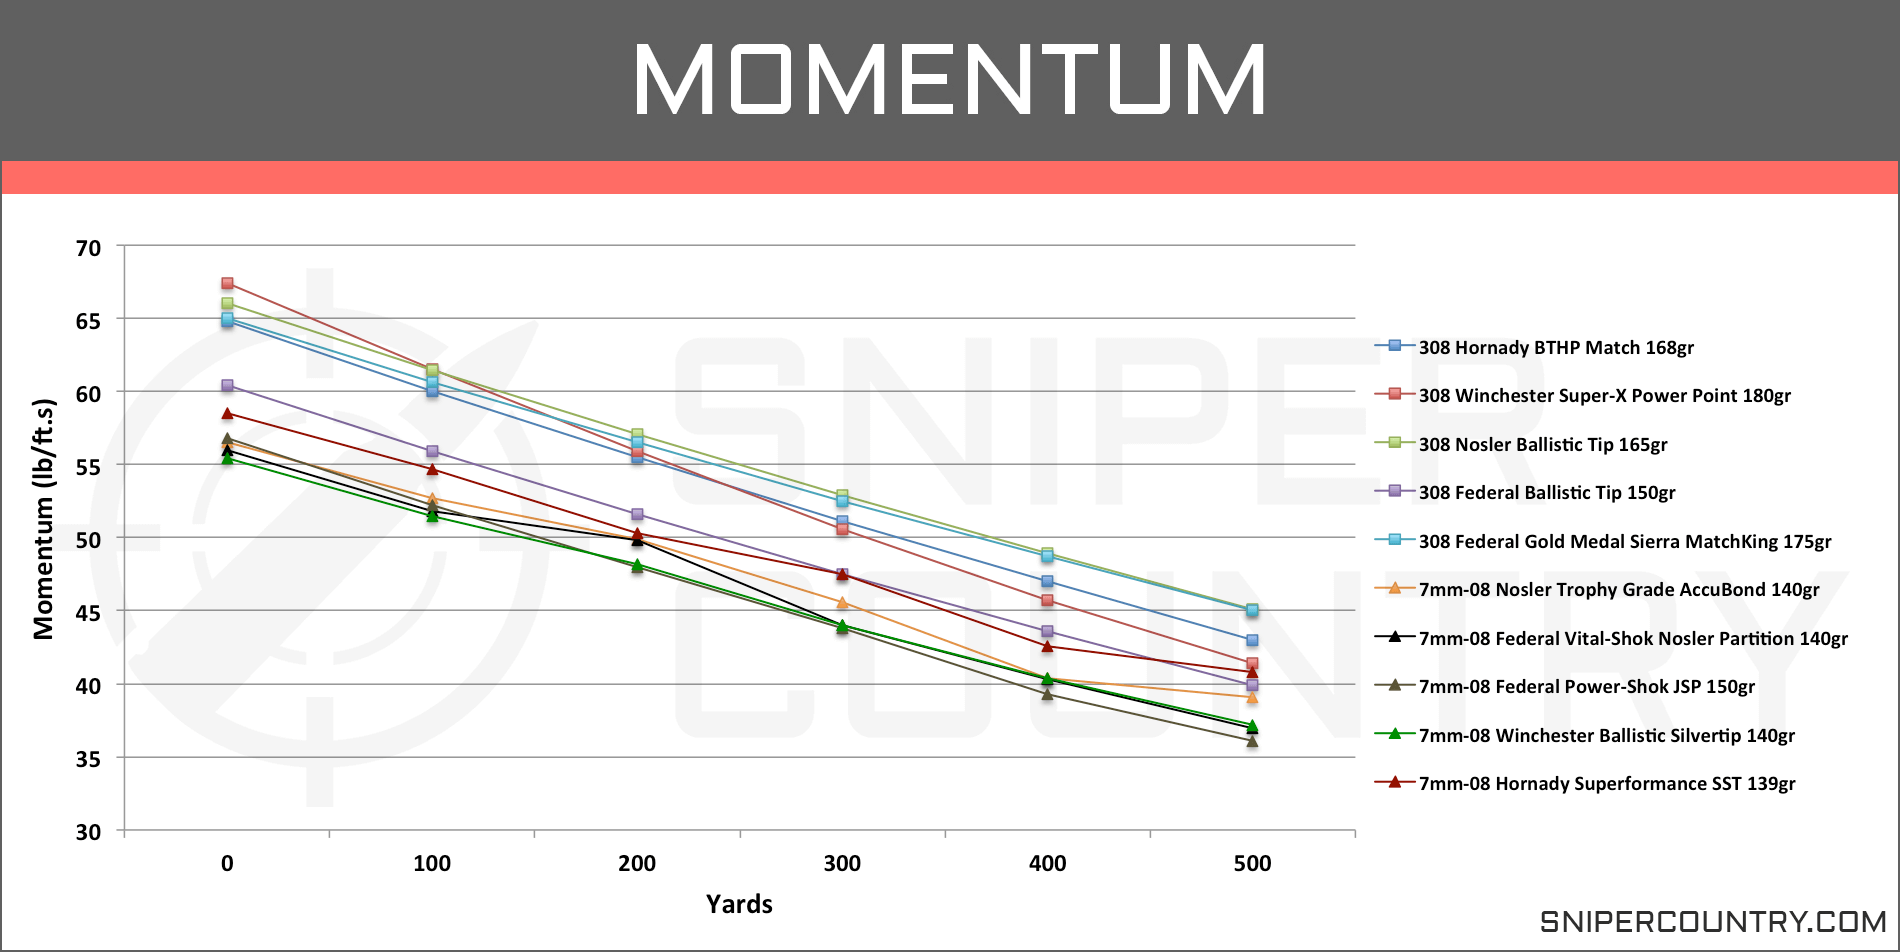 Momentum 7mm-08 vs .308